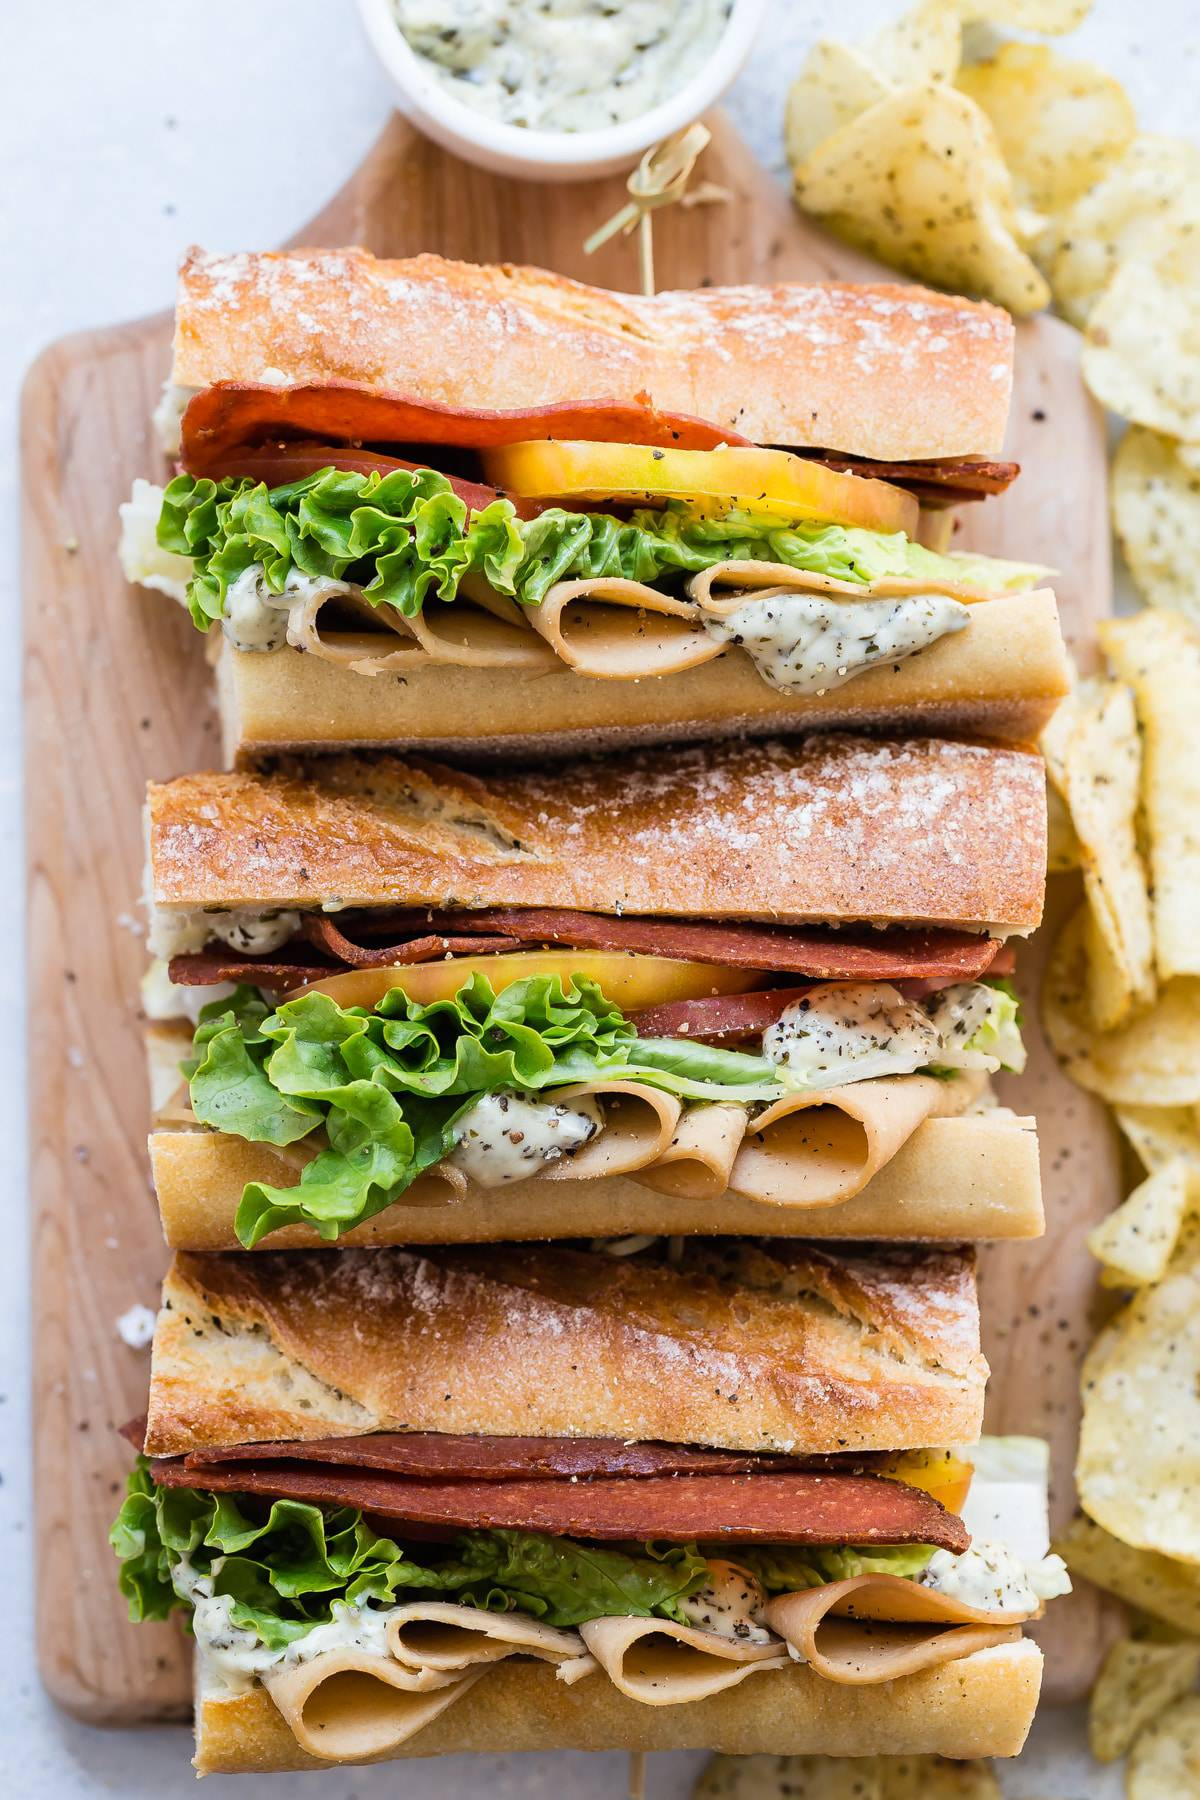 A tasty club sandwich with heirloom tomatoes and lettuce